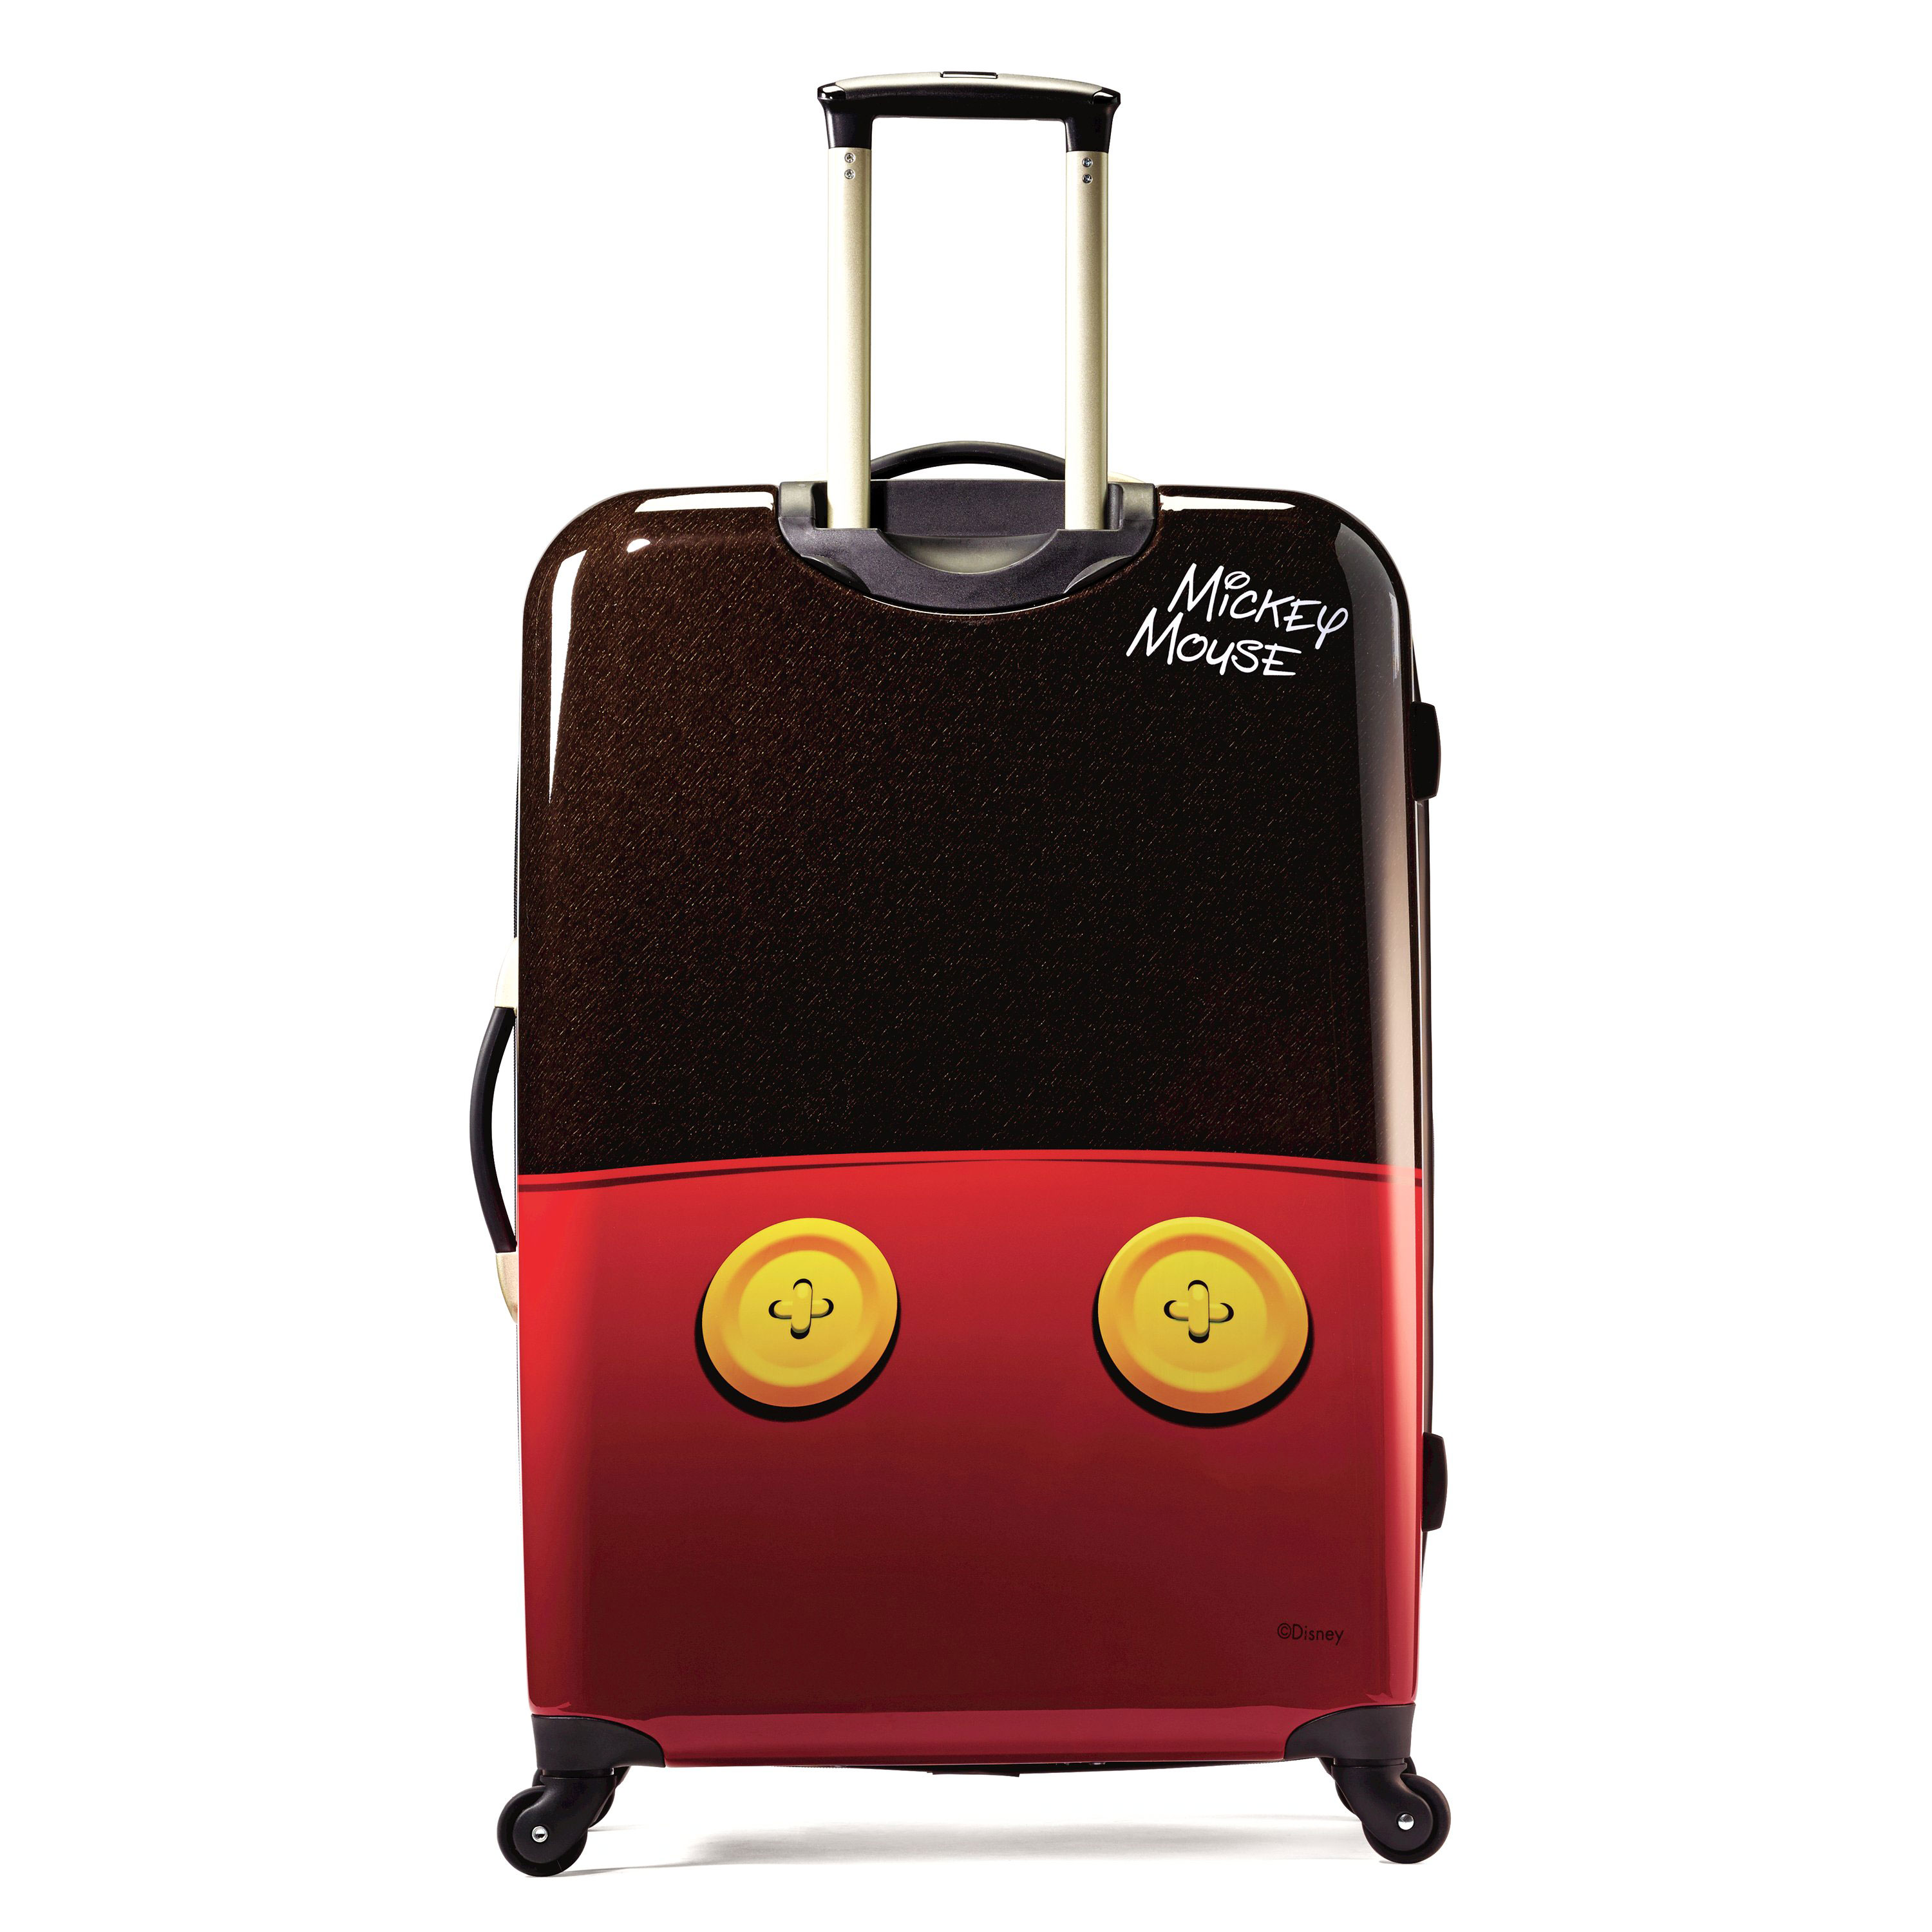 American-Tourister-Disney-Mickey-Mouse-Hardside-Spinner-Luggage thumbnail 7